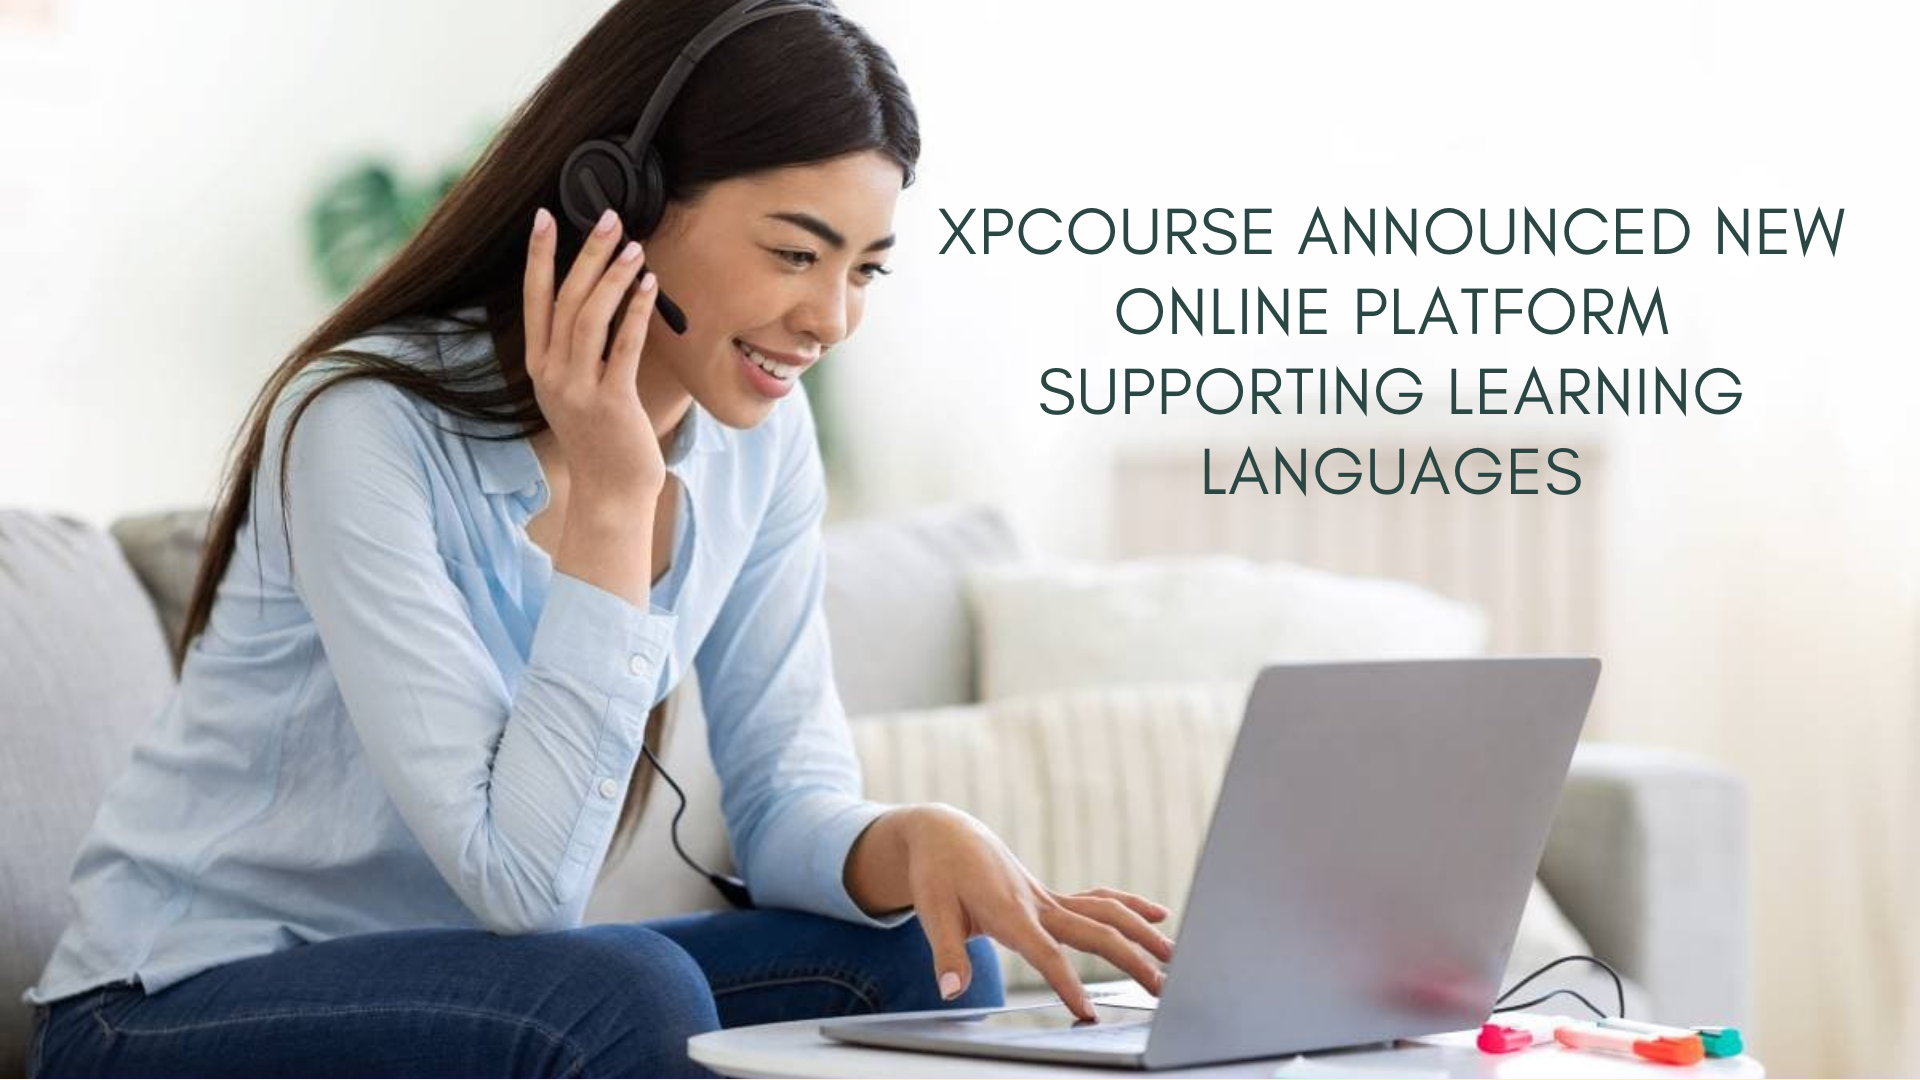 XpCourse announced new online platform supporting learning languages